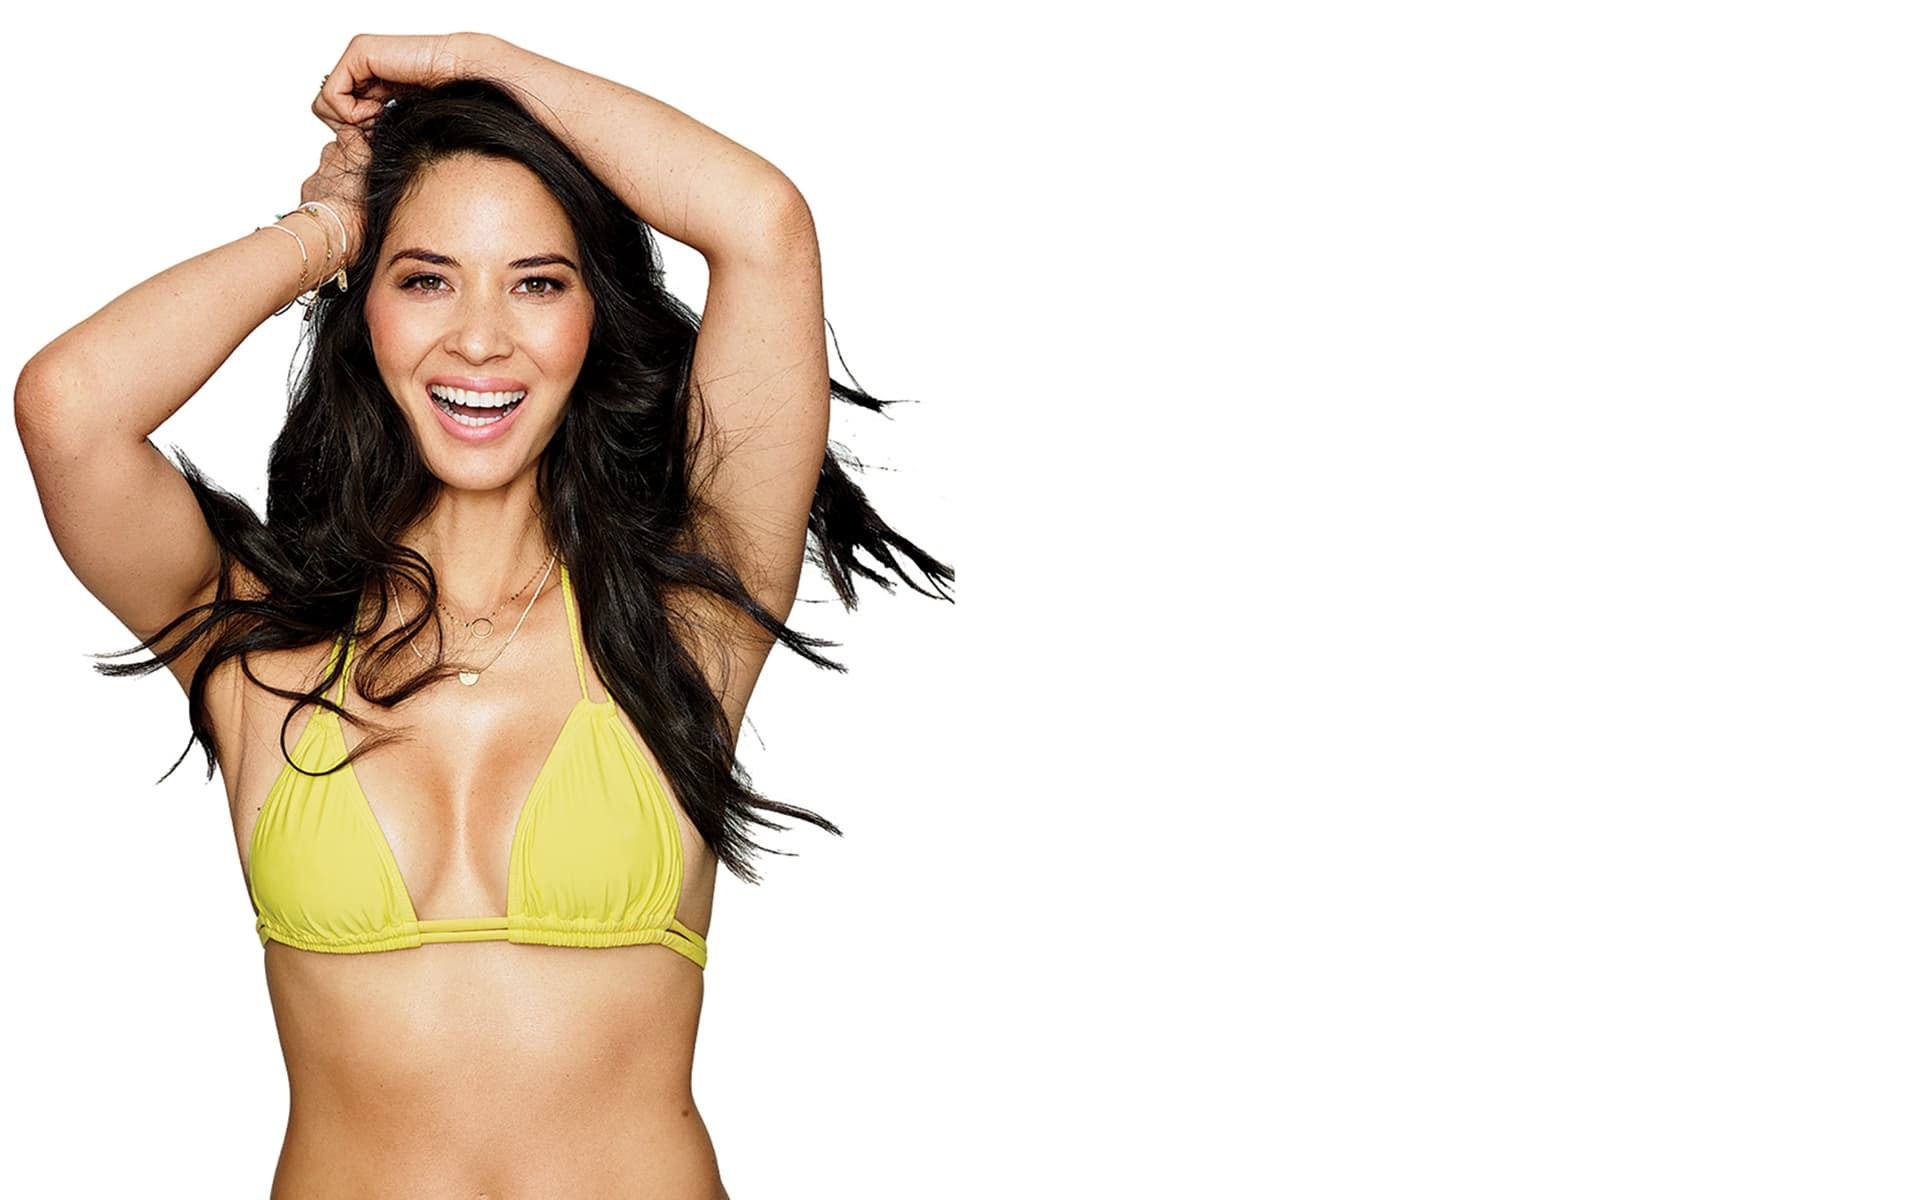 New Hollywood Movies Hd Wallpapers Olivia Munn Wallpapers Pictures Images Hd Download For